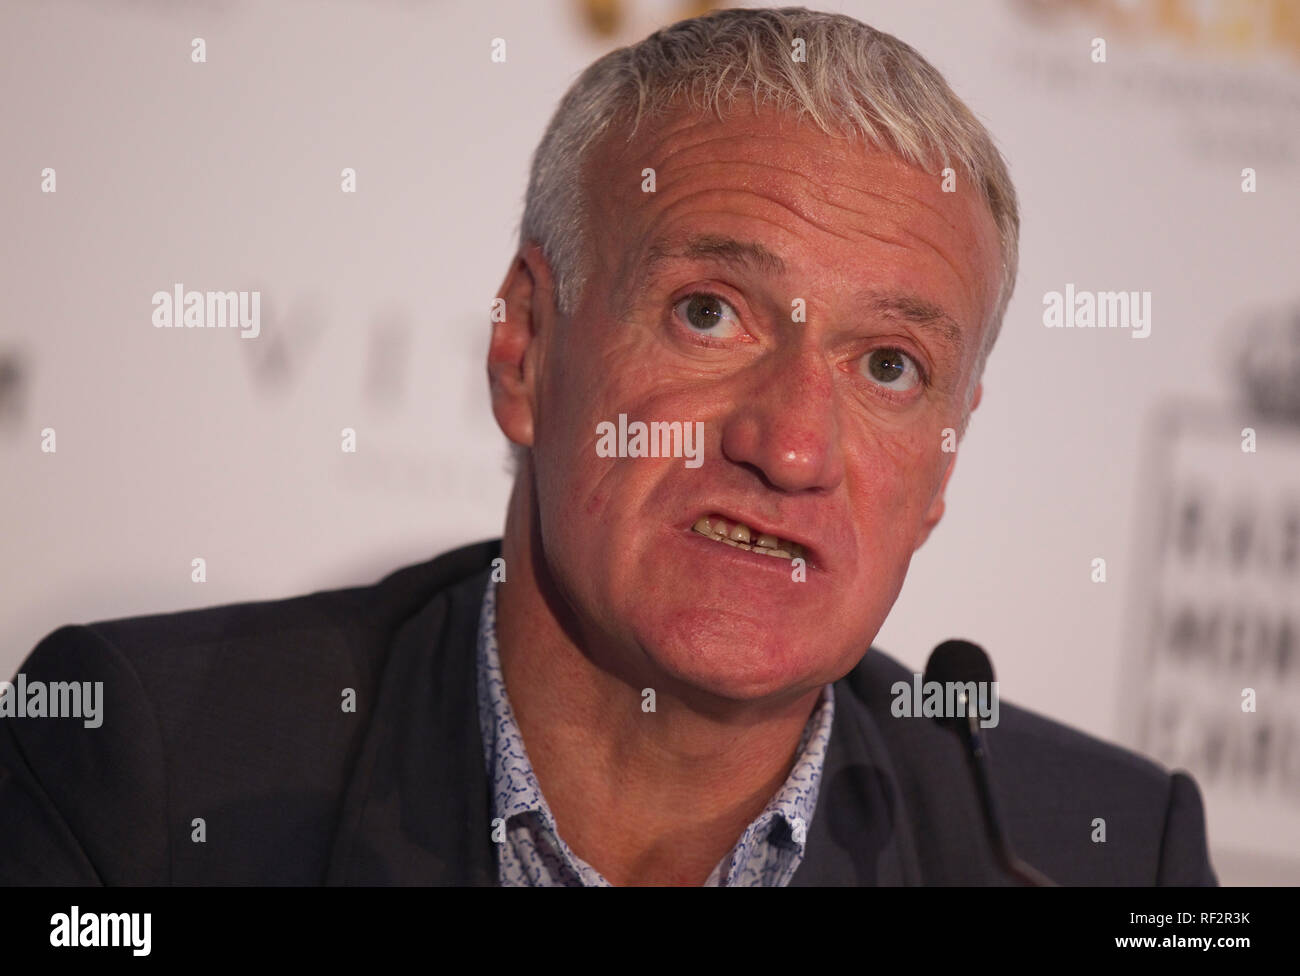 Monaco, Monte Carlo - October 29, 2018: Goldenfoot, The Champions Promenade Award Press Conference with Didier Deschamps. Golden Foot, Awards, Soccer, Fussball, Fussballer, Sport, Sportler, - Stock Image